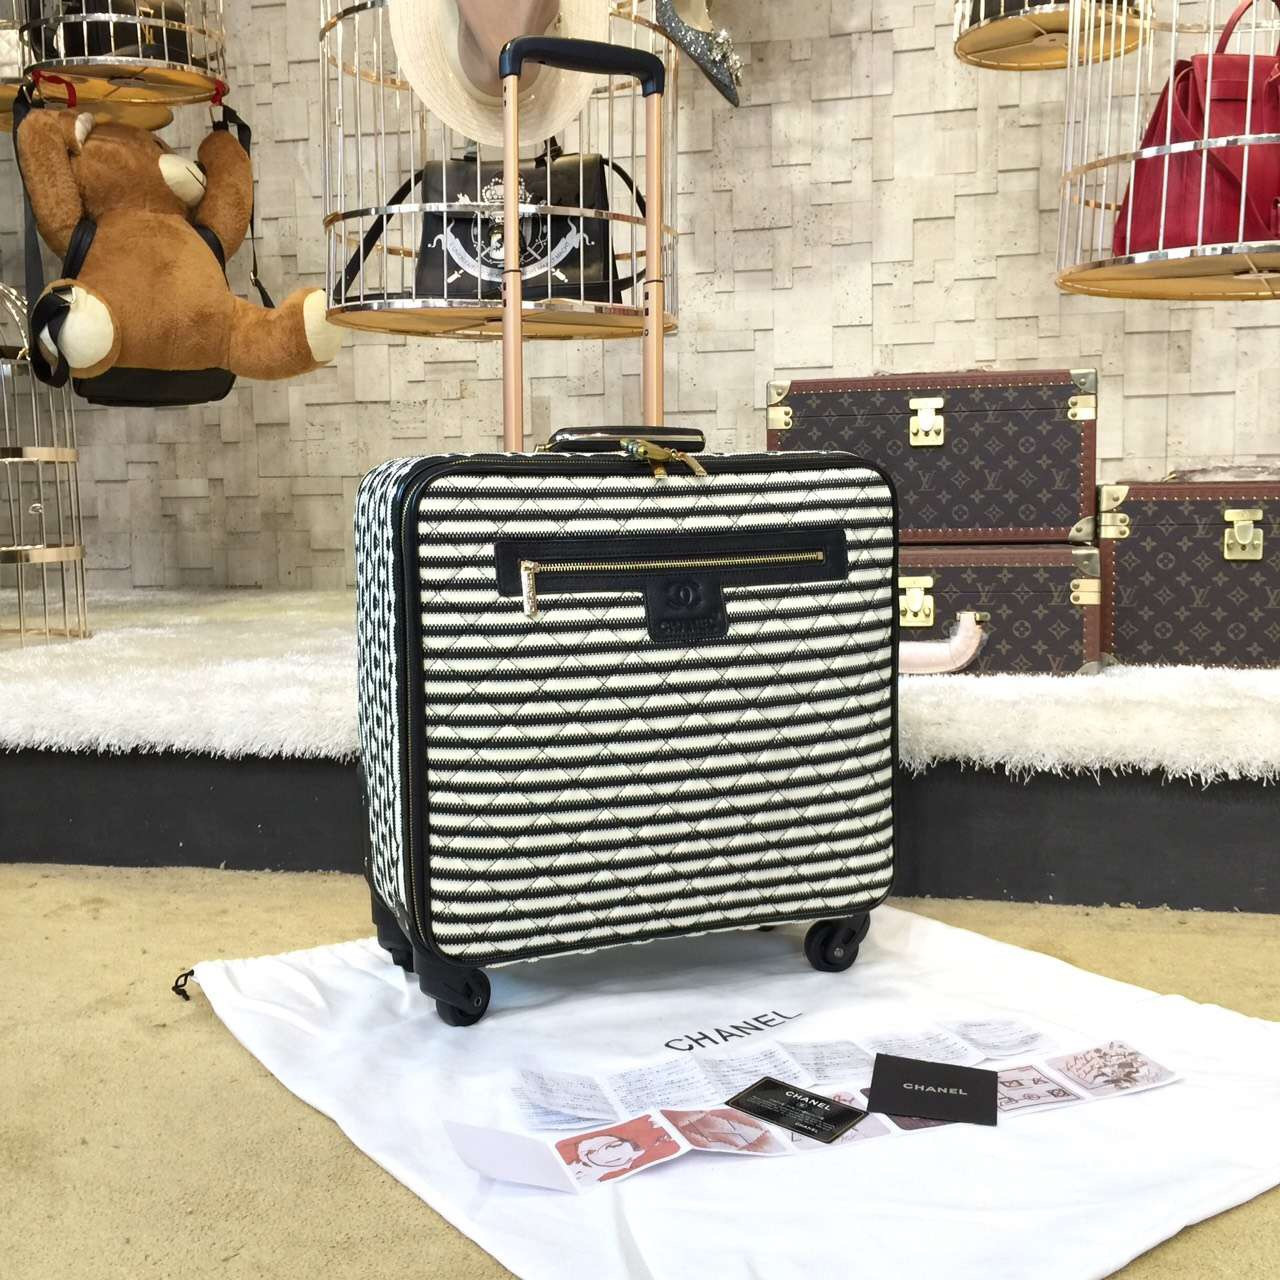 befb59cc35fc Chanel Travel Trolley Rolling Luggage 42cm Lambskin Leather Gold Hardware  Spring/Summer 2019 Collection,